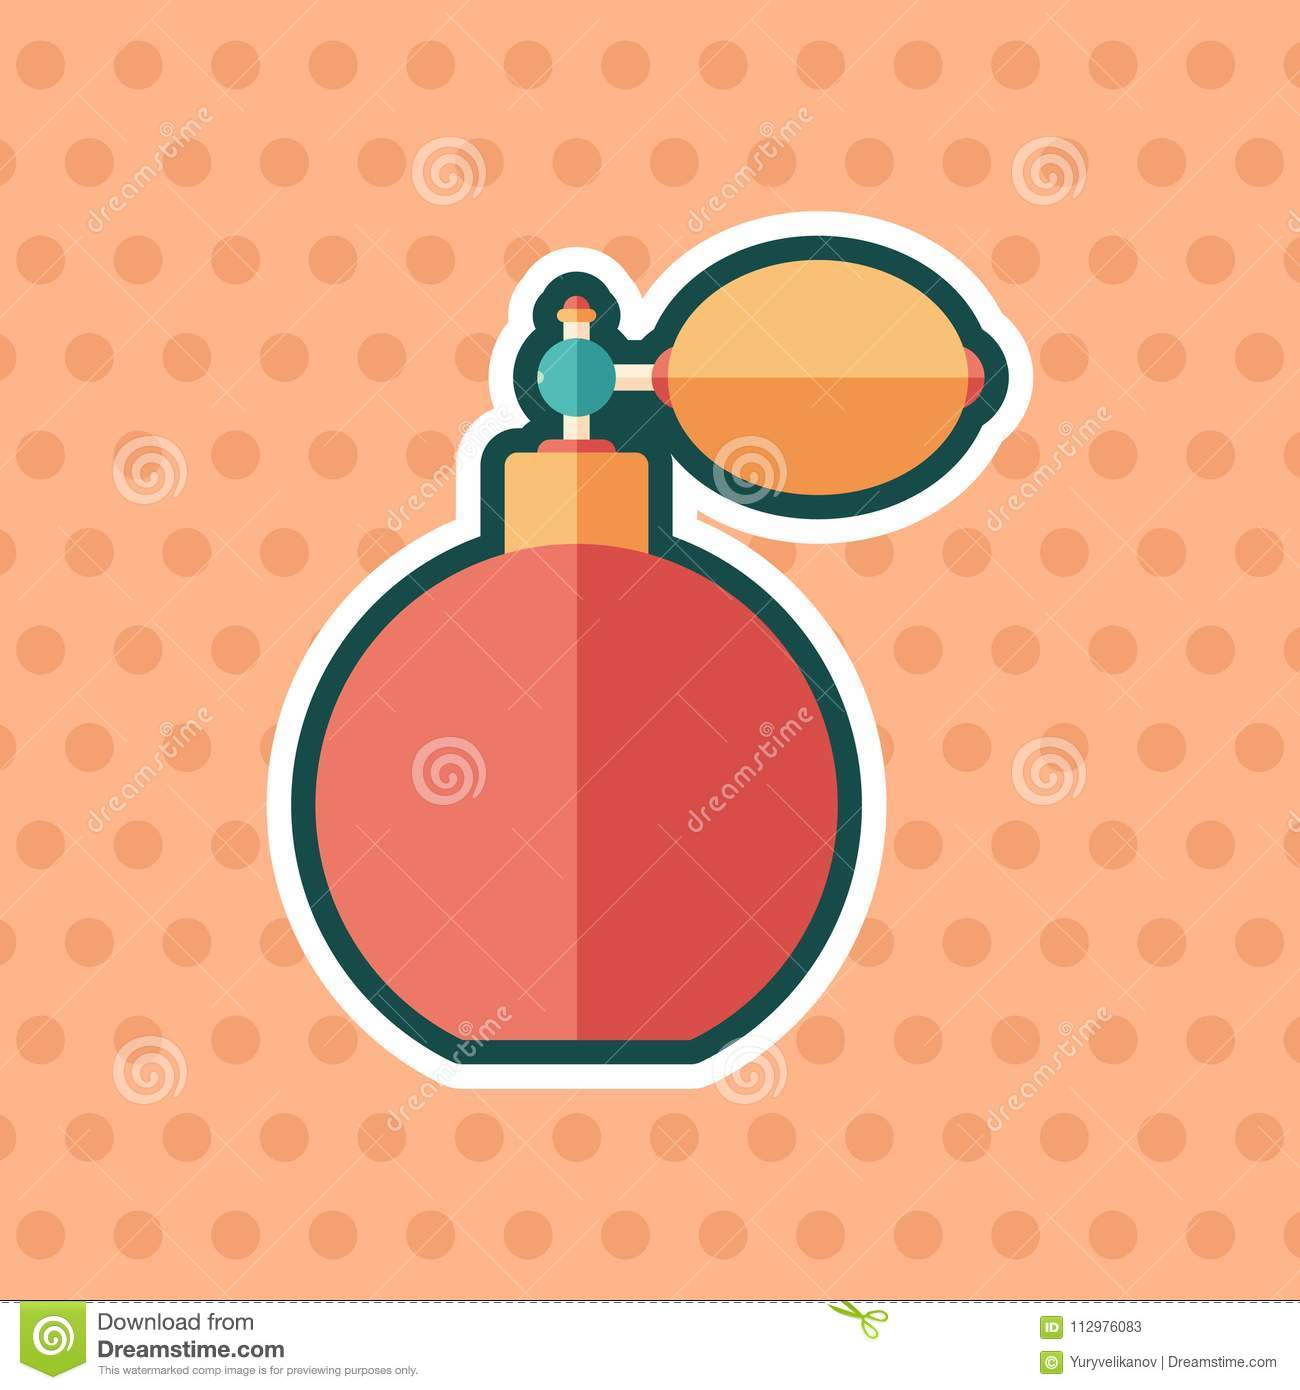 Retro perfume bottle sticker flat icon with color background.